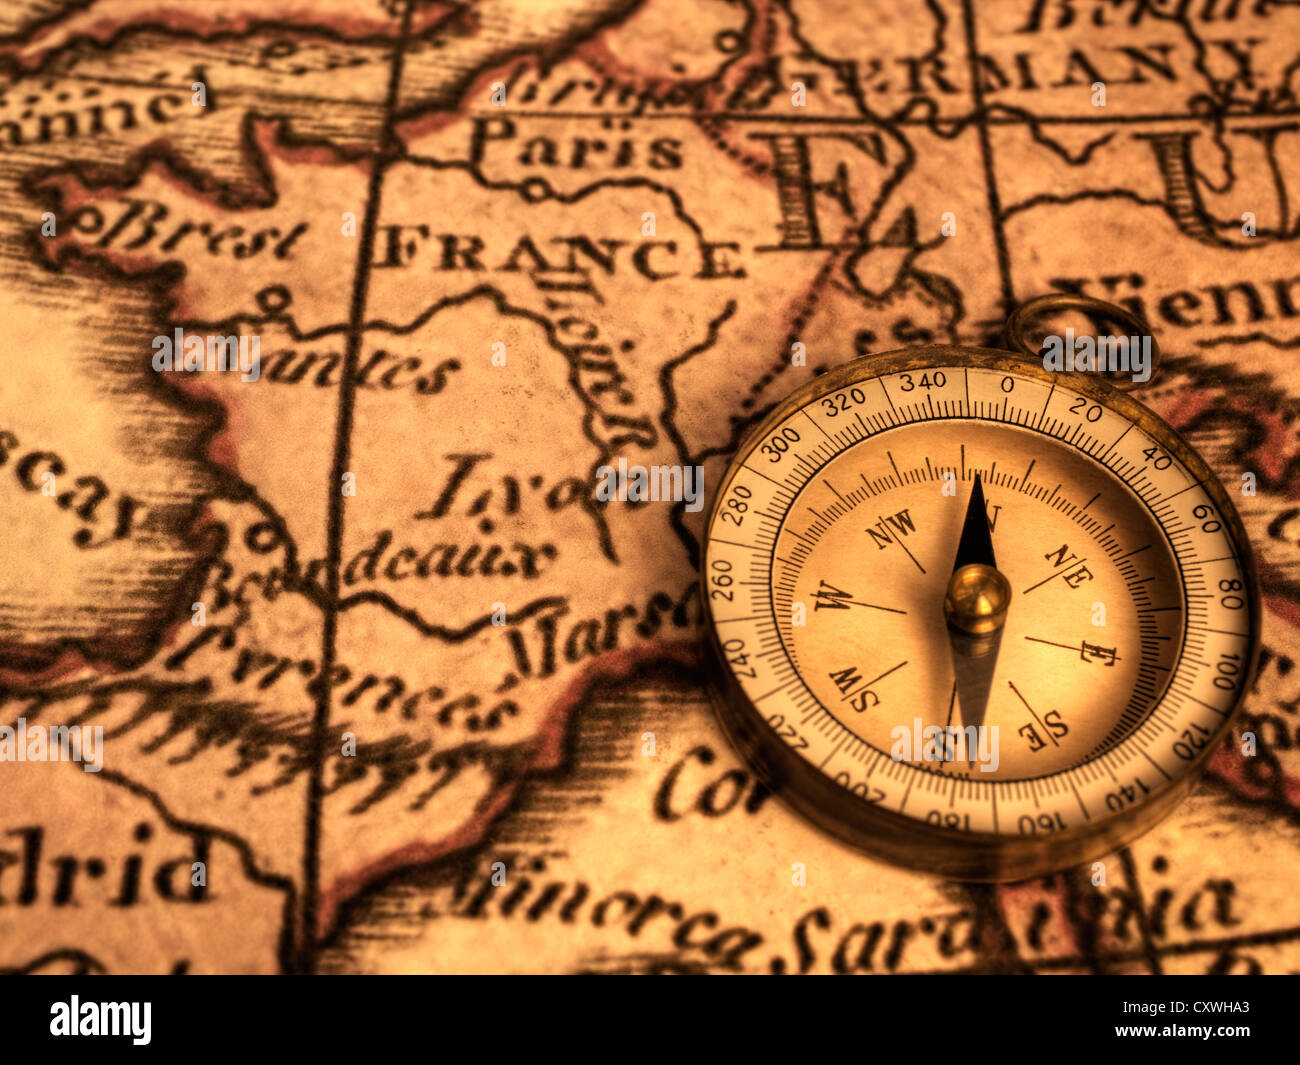 Grungey old compass and map of France. Map is from 1786 and is out of copyright. - Stock Image